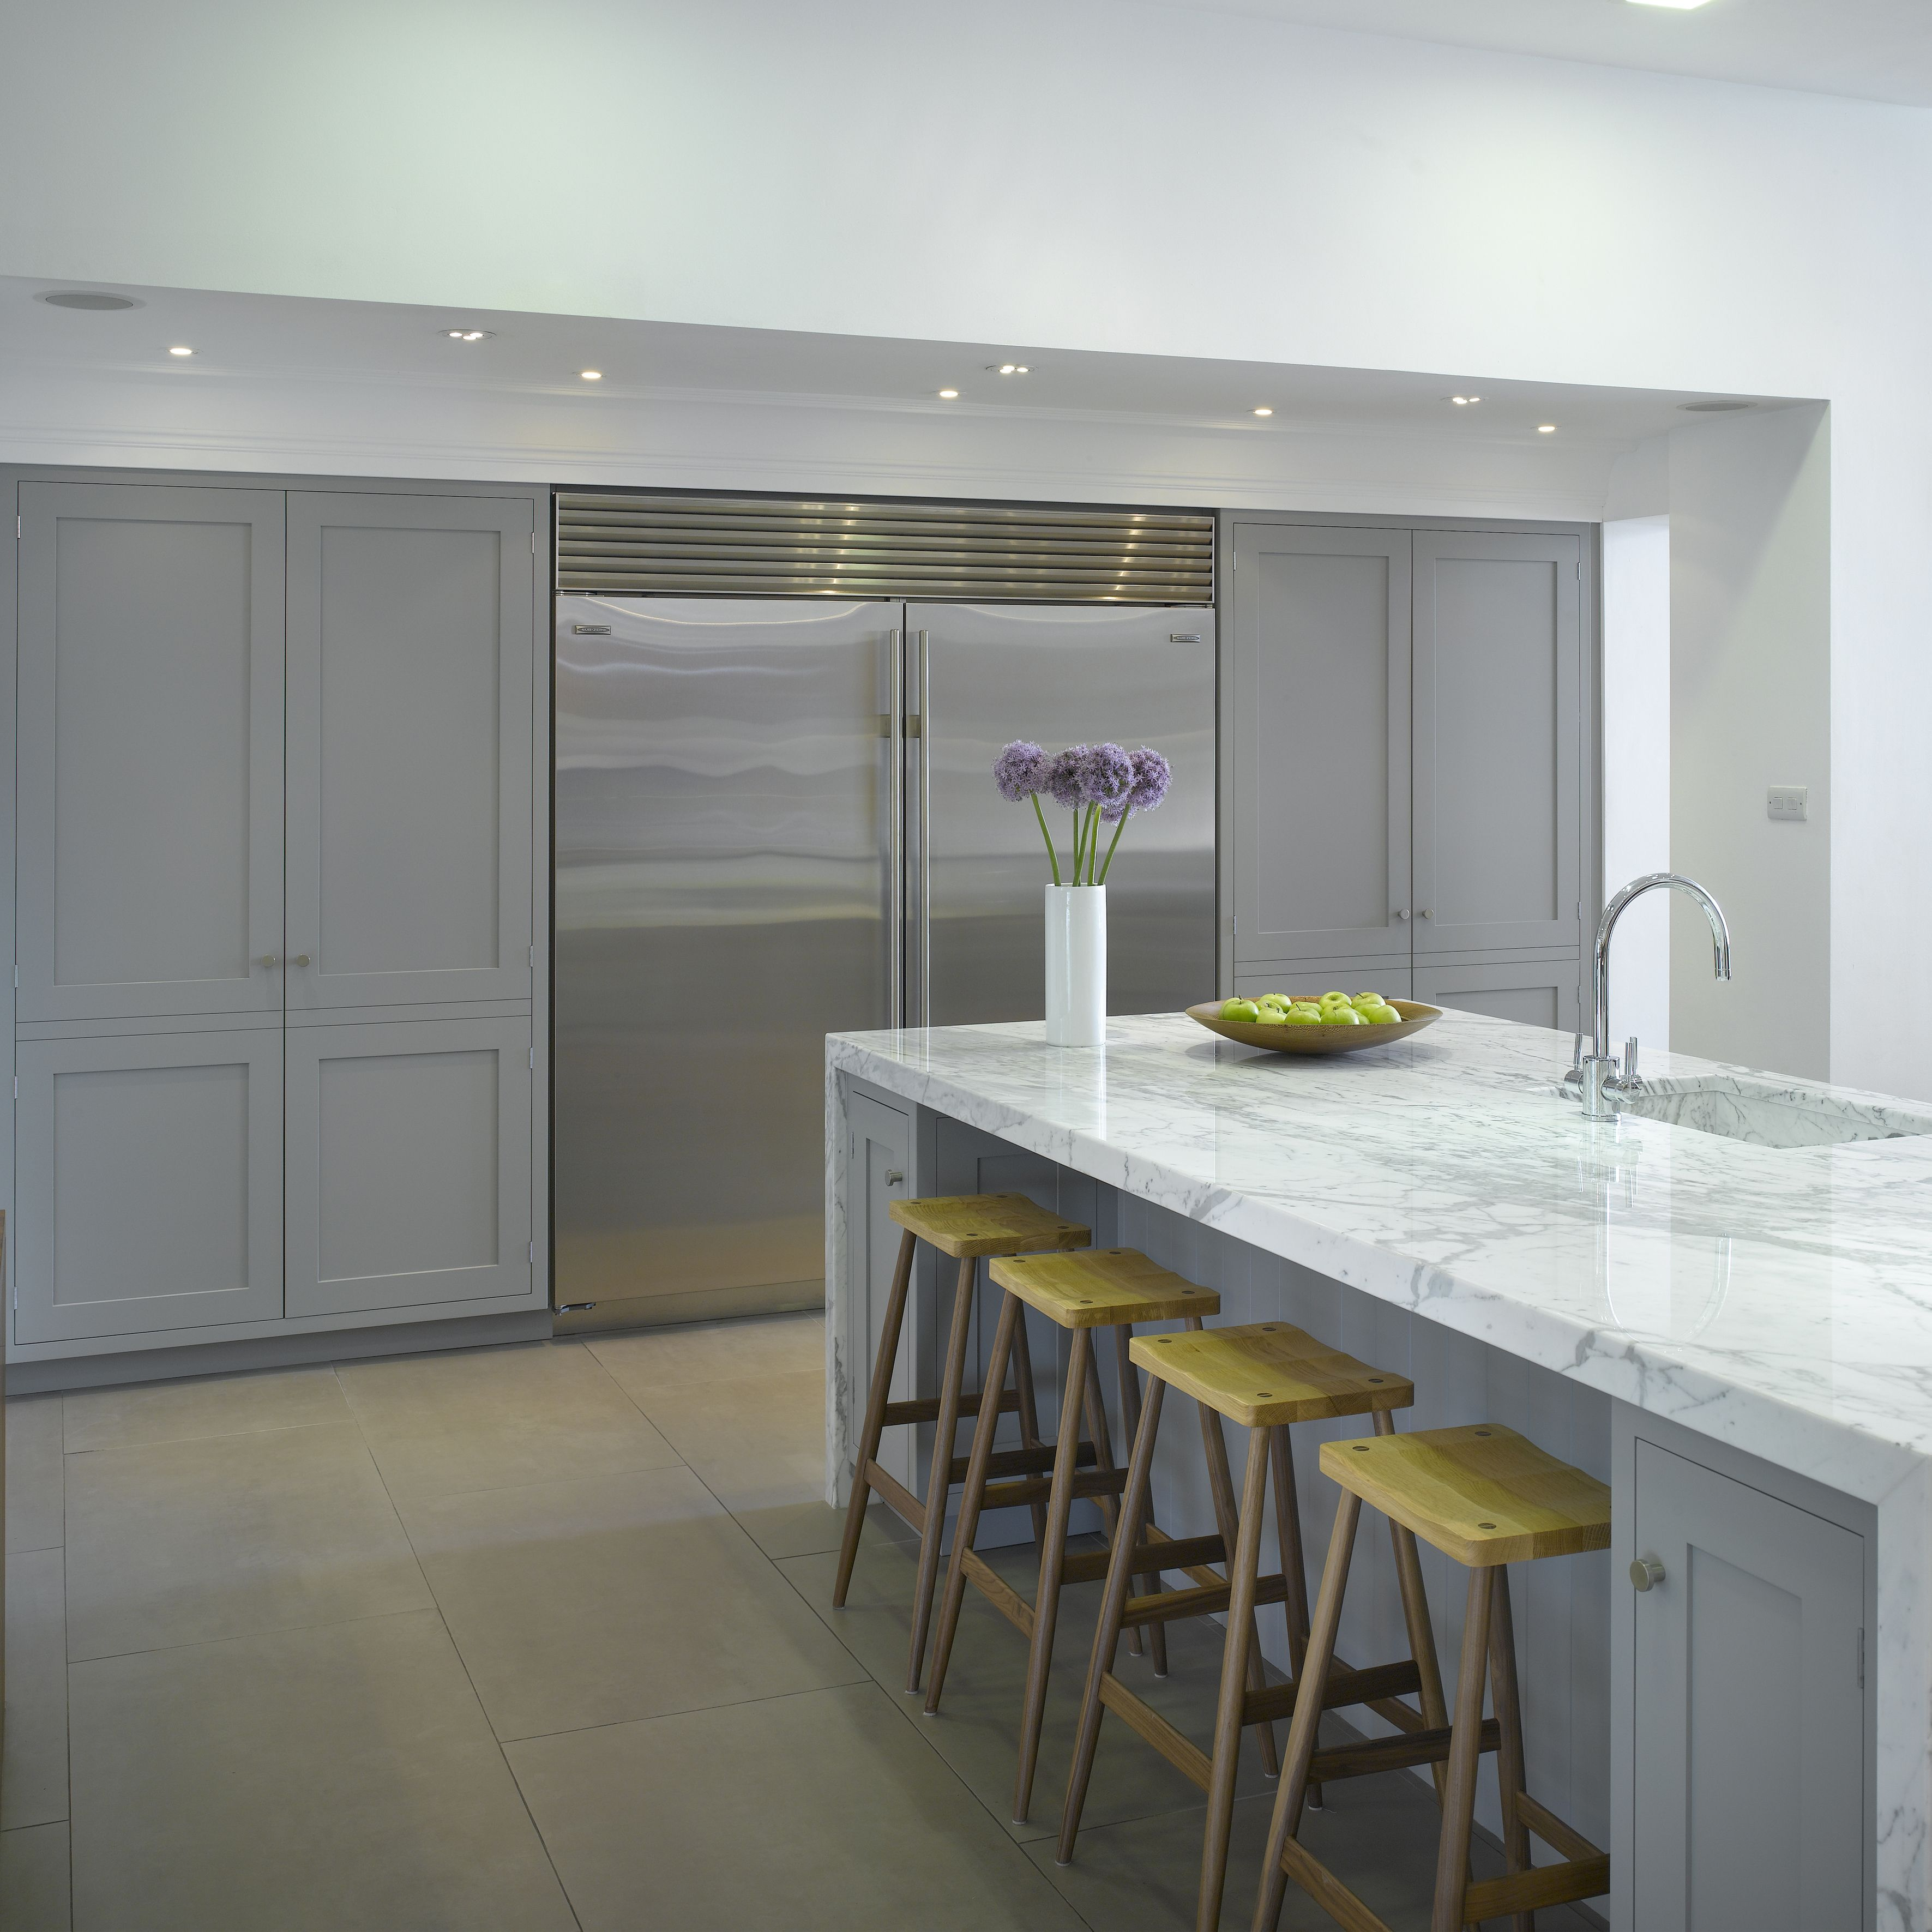 Roundhouse Classic Bespoke Kitchen With Carrara Marble Worksurface